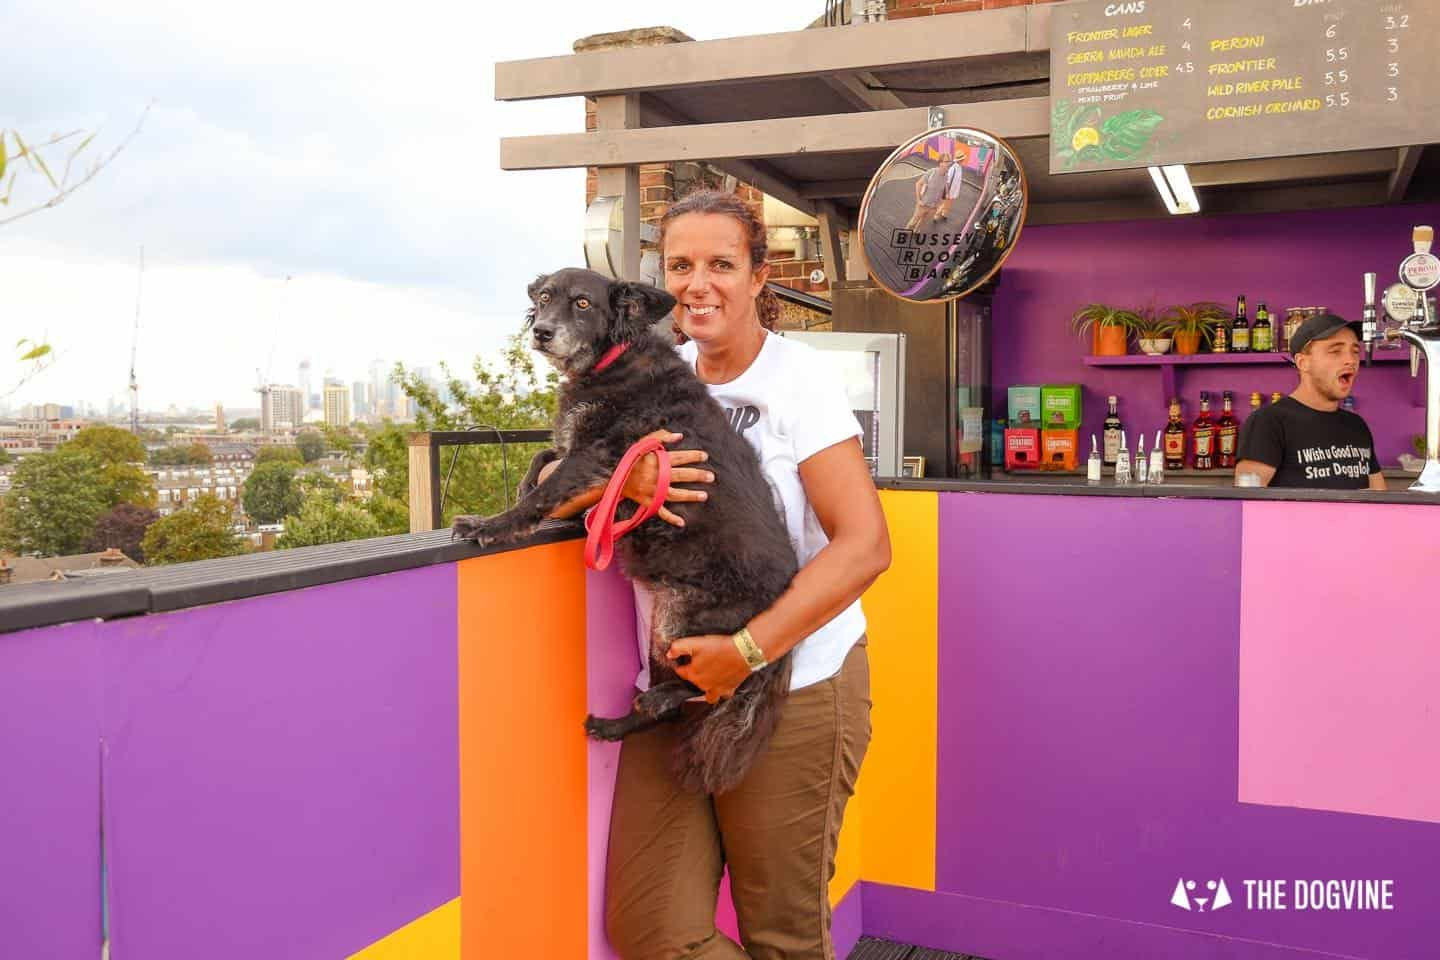 Spectacular Movie Moments at the Dog-friendly Rooftop Film Club 3